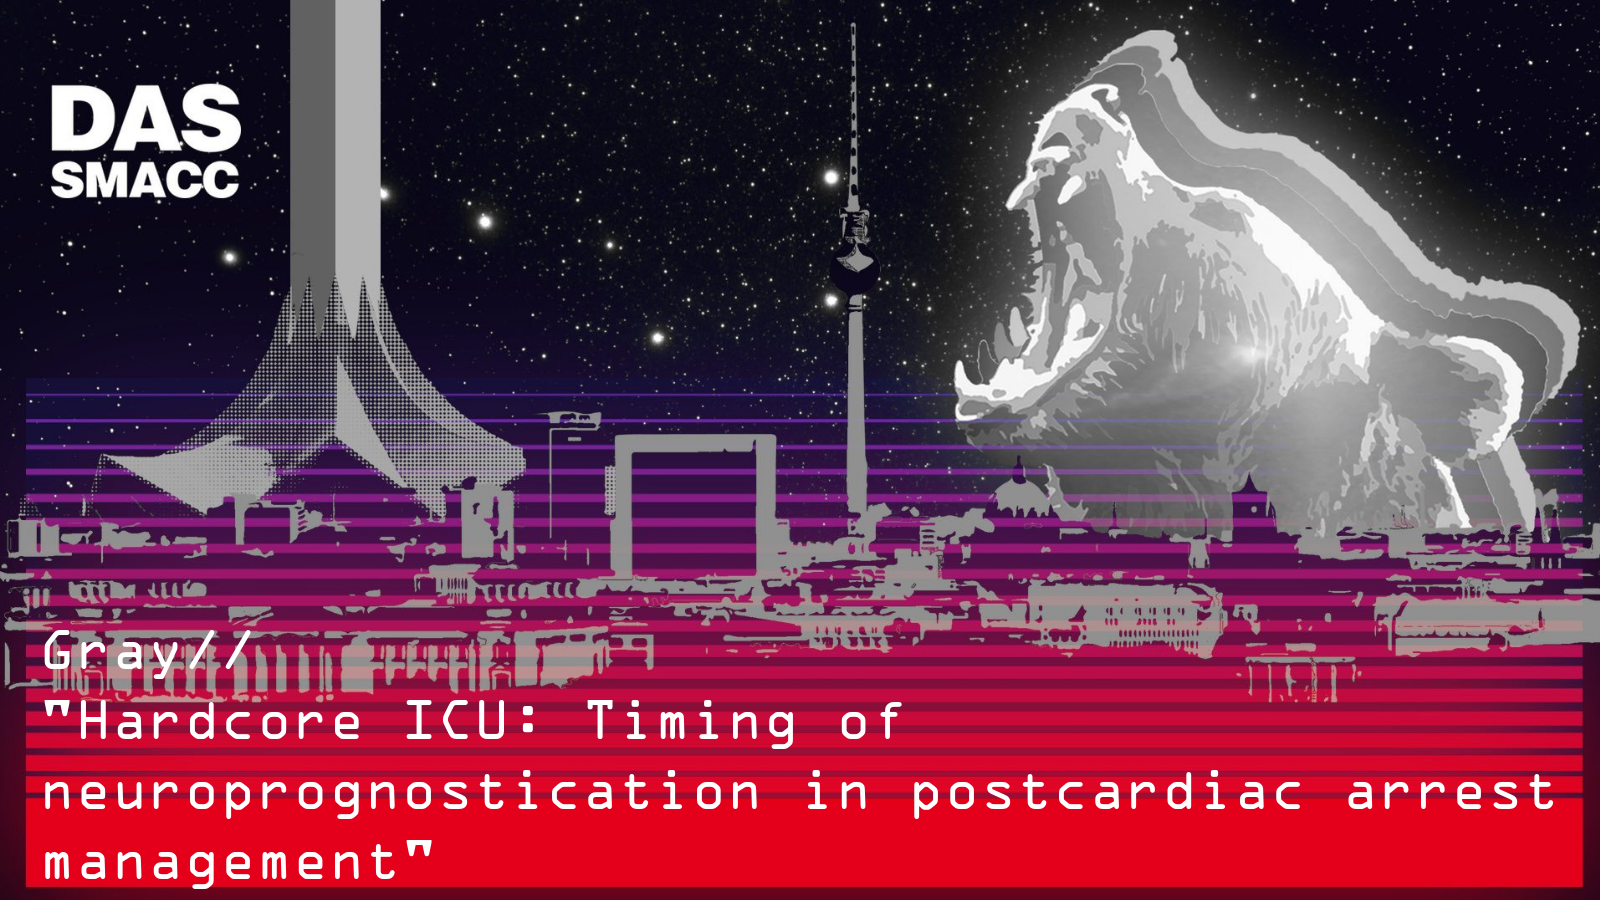 Timing of neuroprognostication in postcardiac arrest management